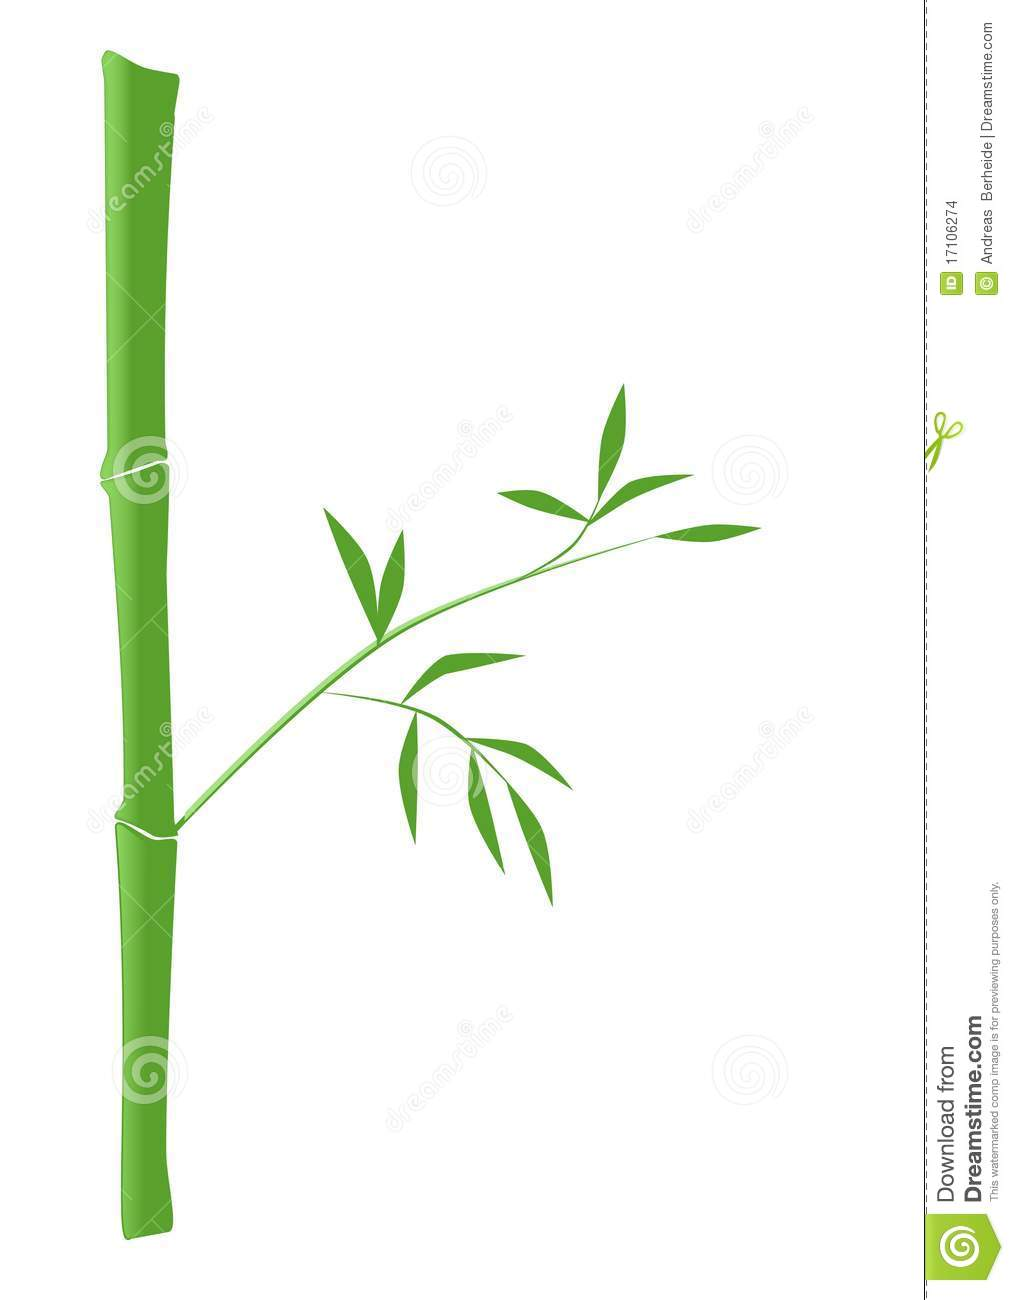 Bamboo Art Clipart 20 Free Cliparts Download Images On